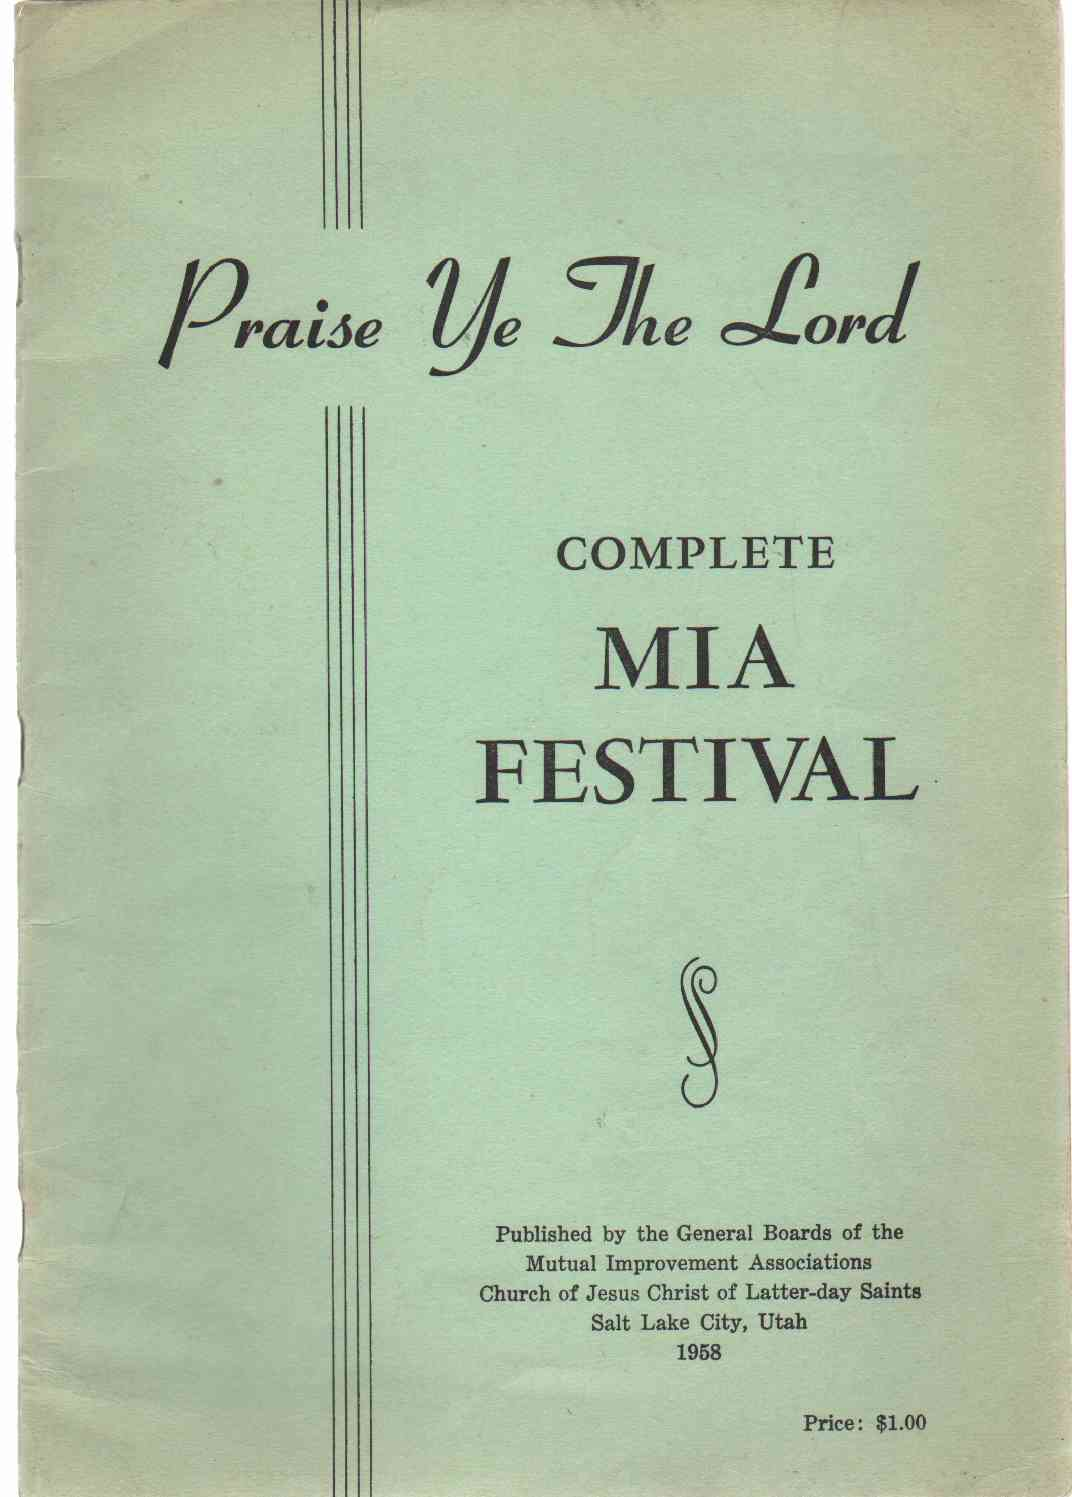 Image for PRAISE YE THE LORD Complete Mia Festival Music, Speech, Drama, Dance